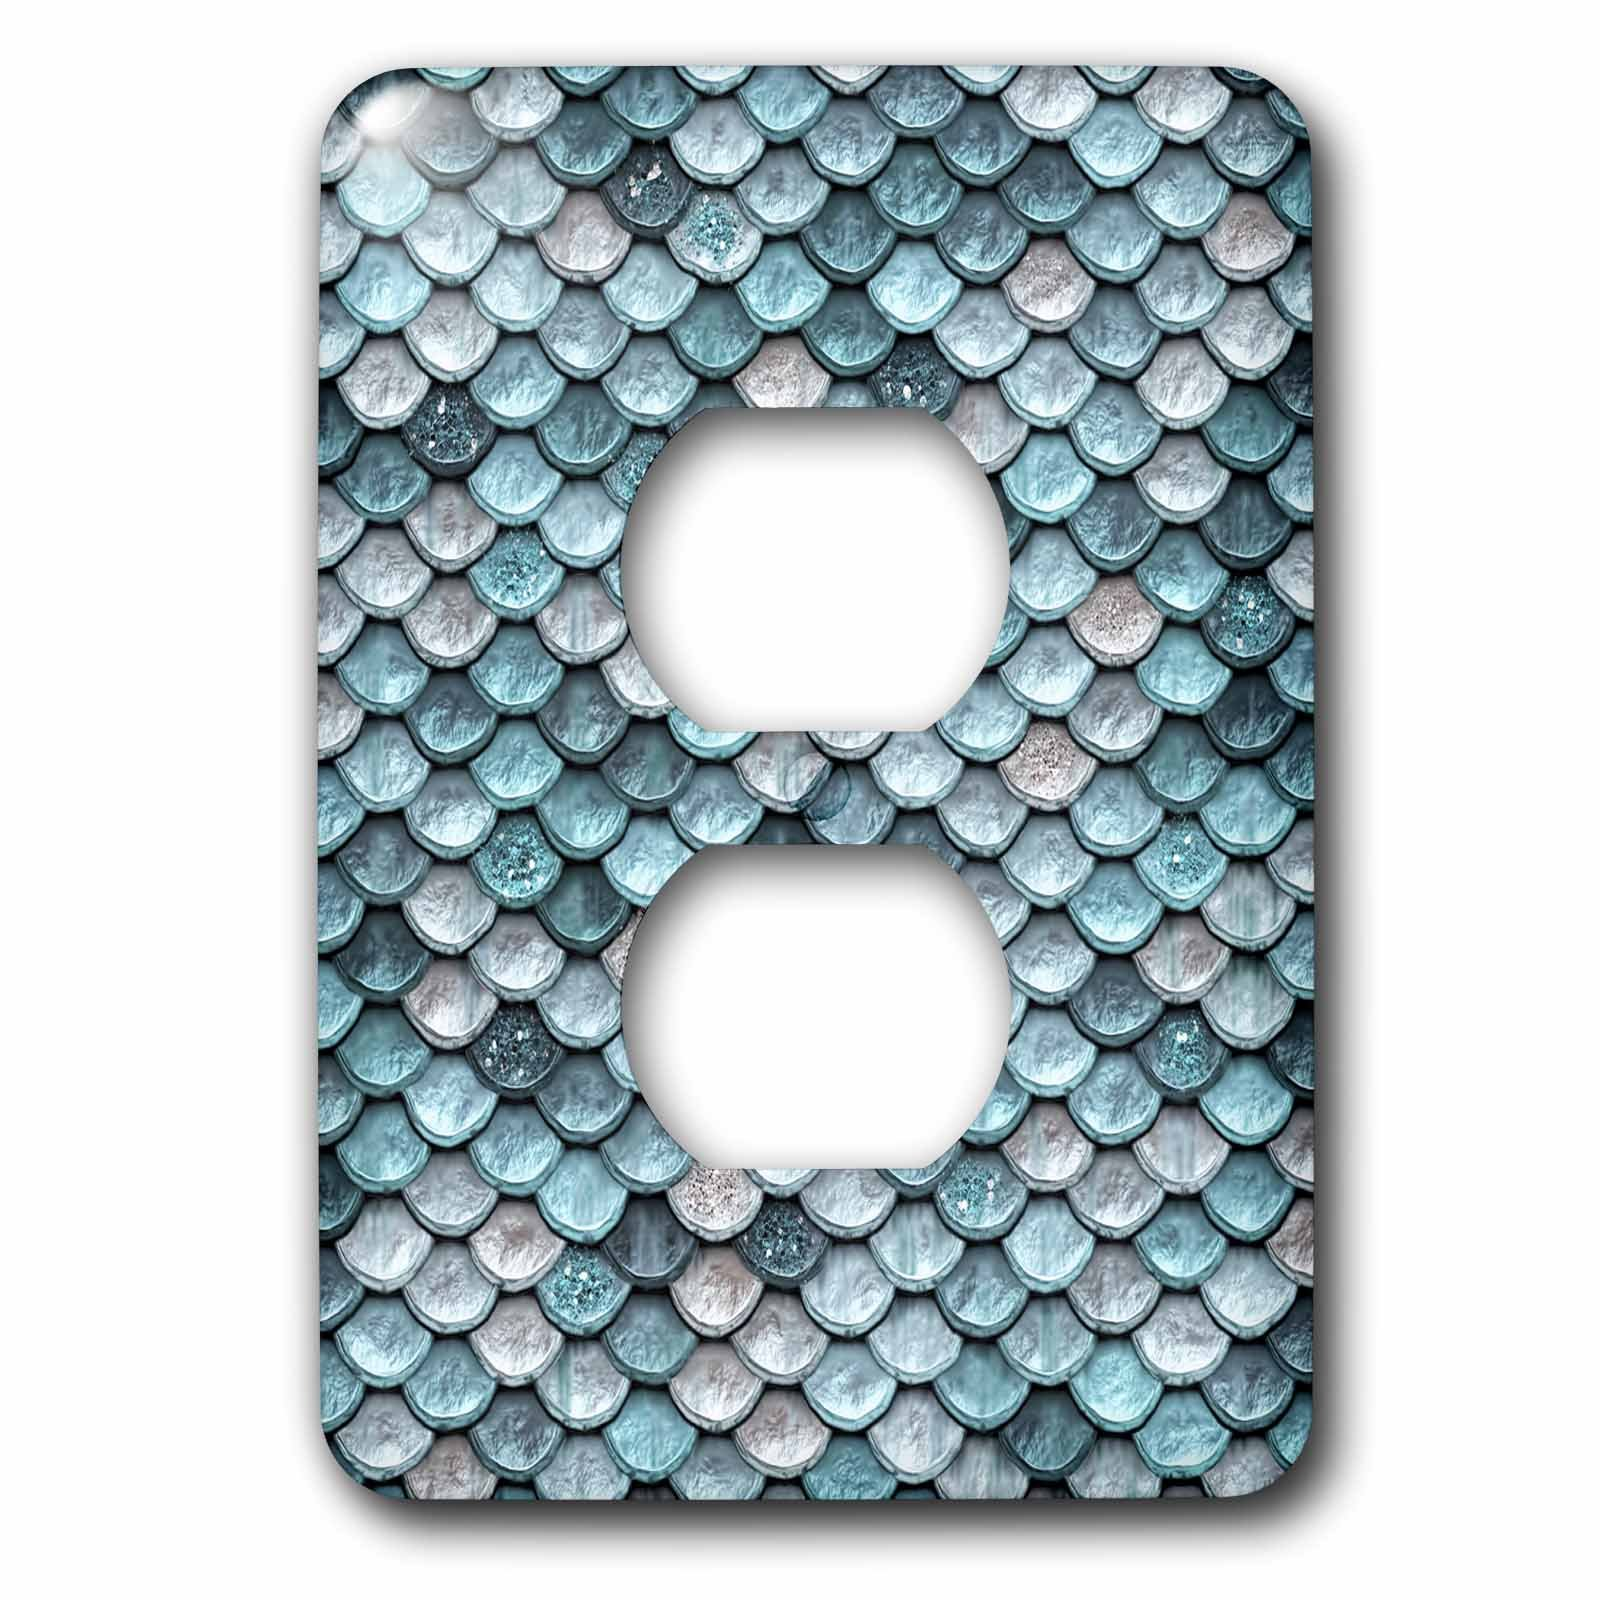 3dRose Uta Naumann Faux Glitter Pattern - Sparkling Teal Luxury Elegant Mermaid Scales Glitter Effect Artprint - Light Switch Covers - 2 plug outlet cover (lsp_267058_6) by 3dRose (Image #1)